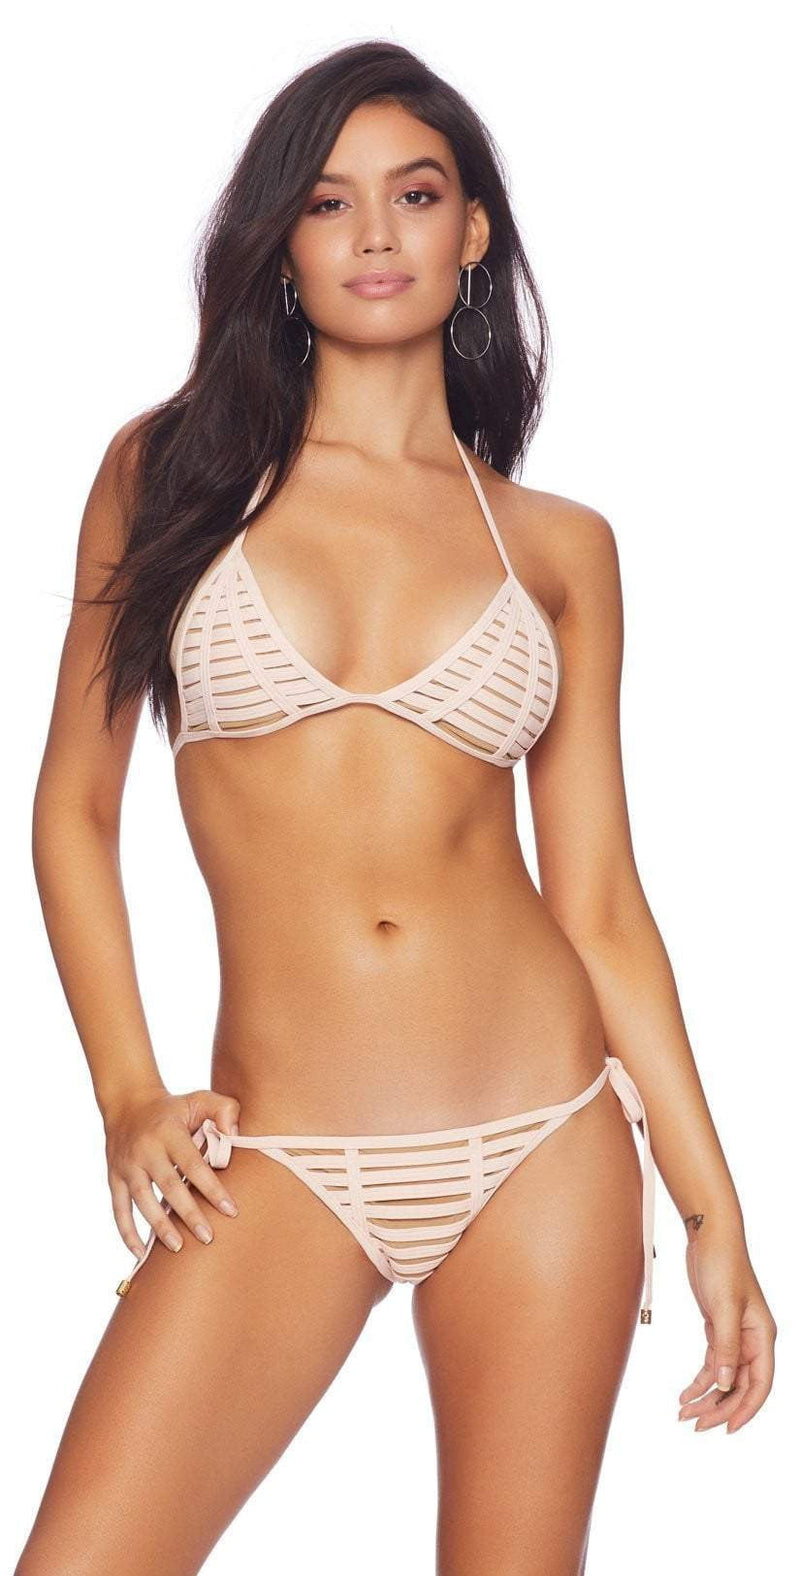 Beach Bunny Hard Summer Tie Side Skimpy Bottom in Blush B16104B2-BLUSH: